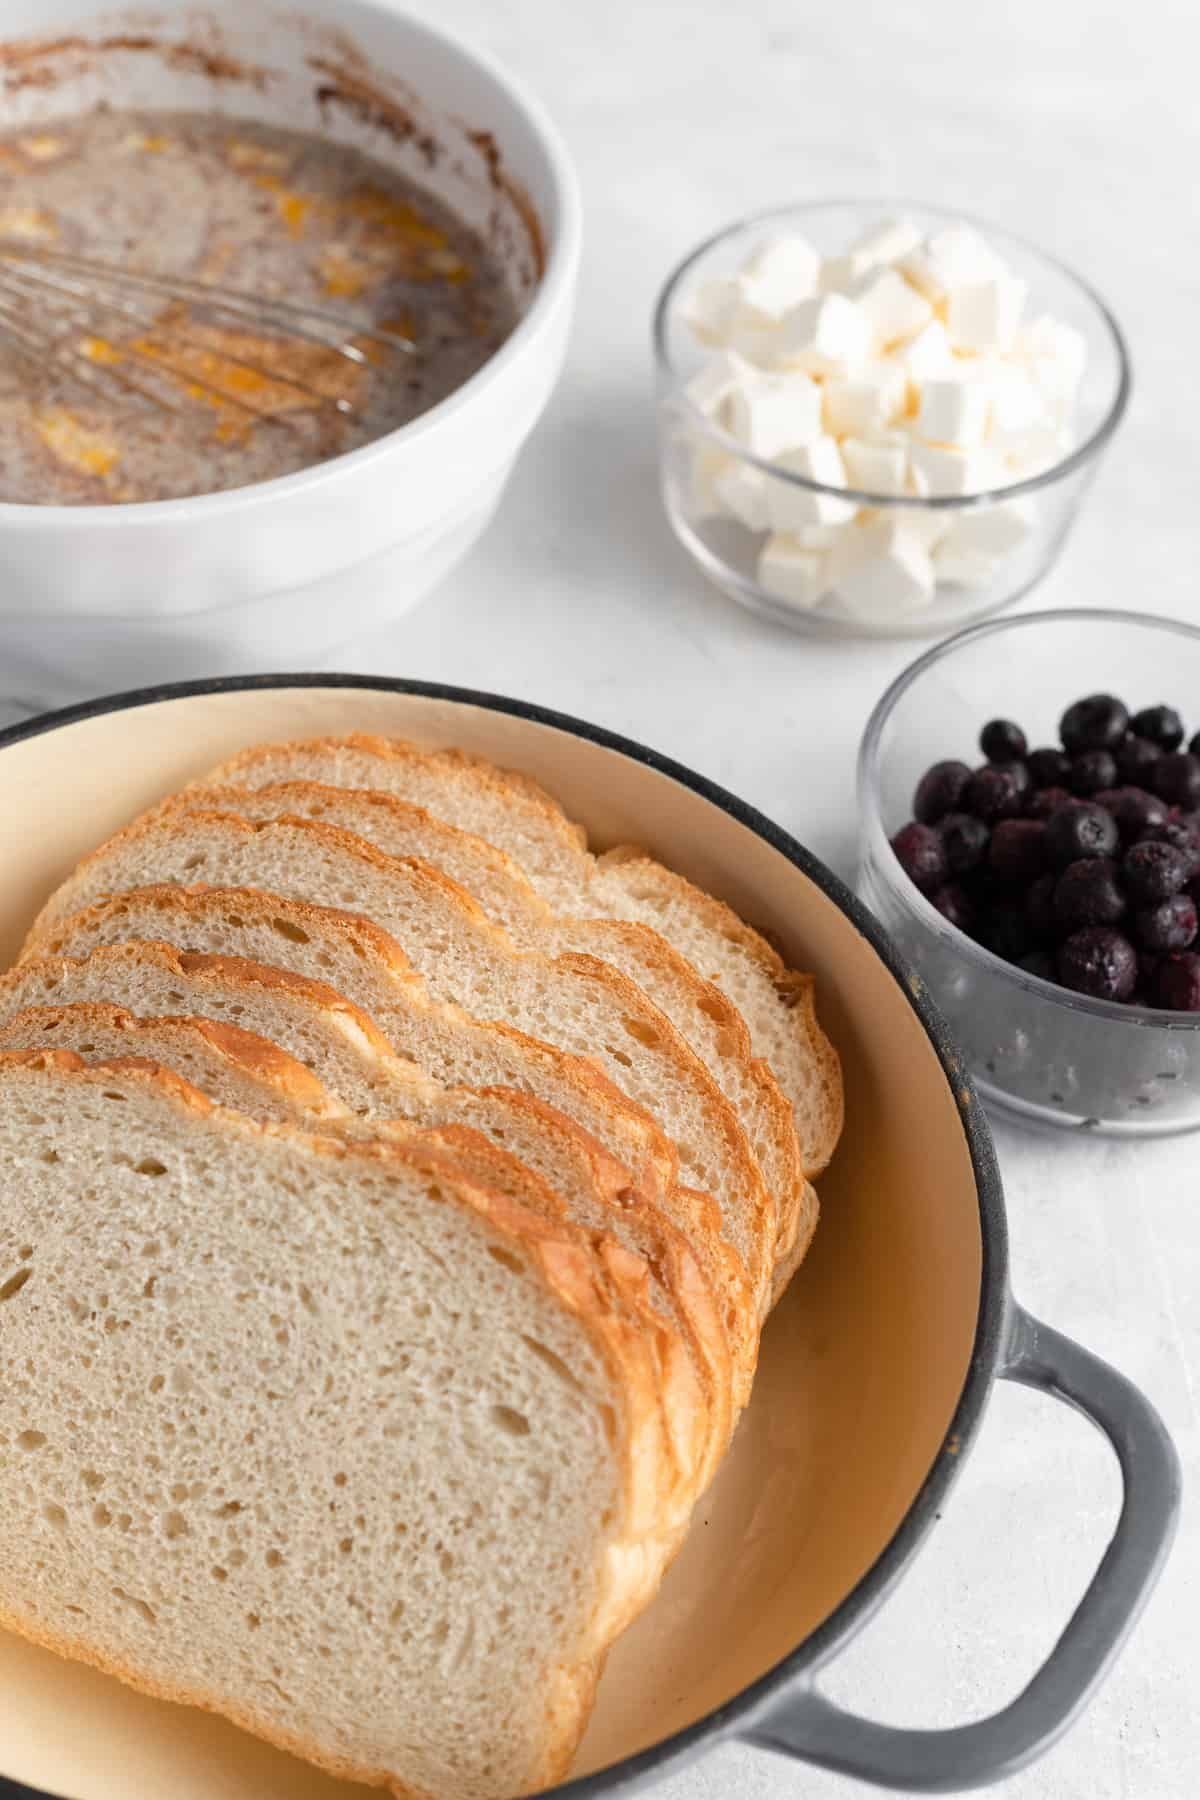 Sourdough Bread, Cream Cheese, Blueberries and the Rest of the Casserole Ingredients on a Countertop